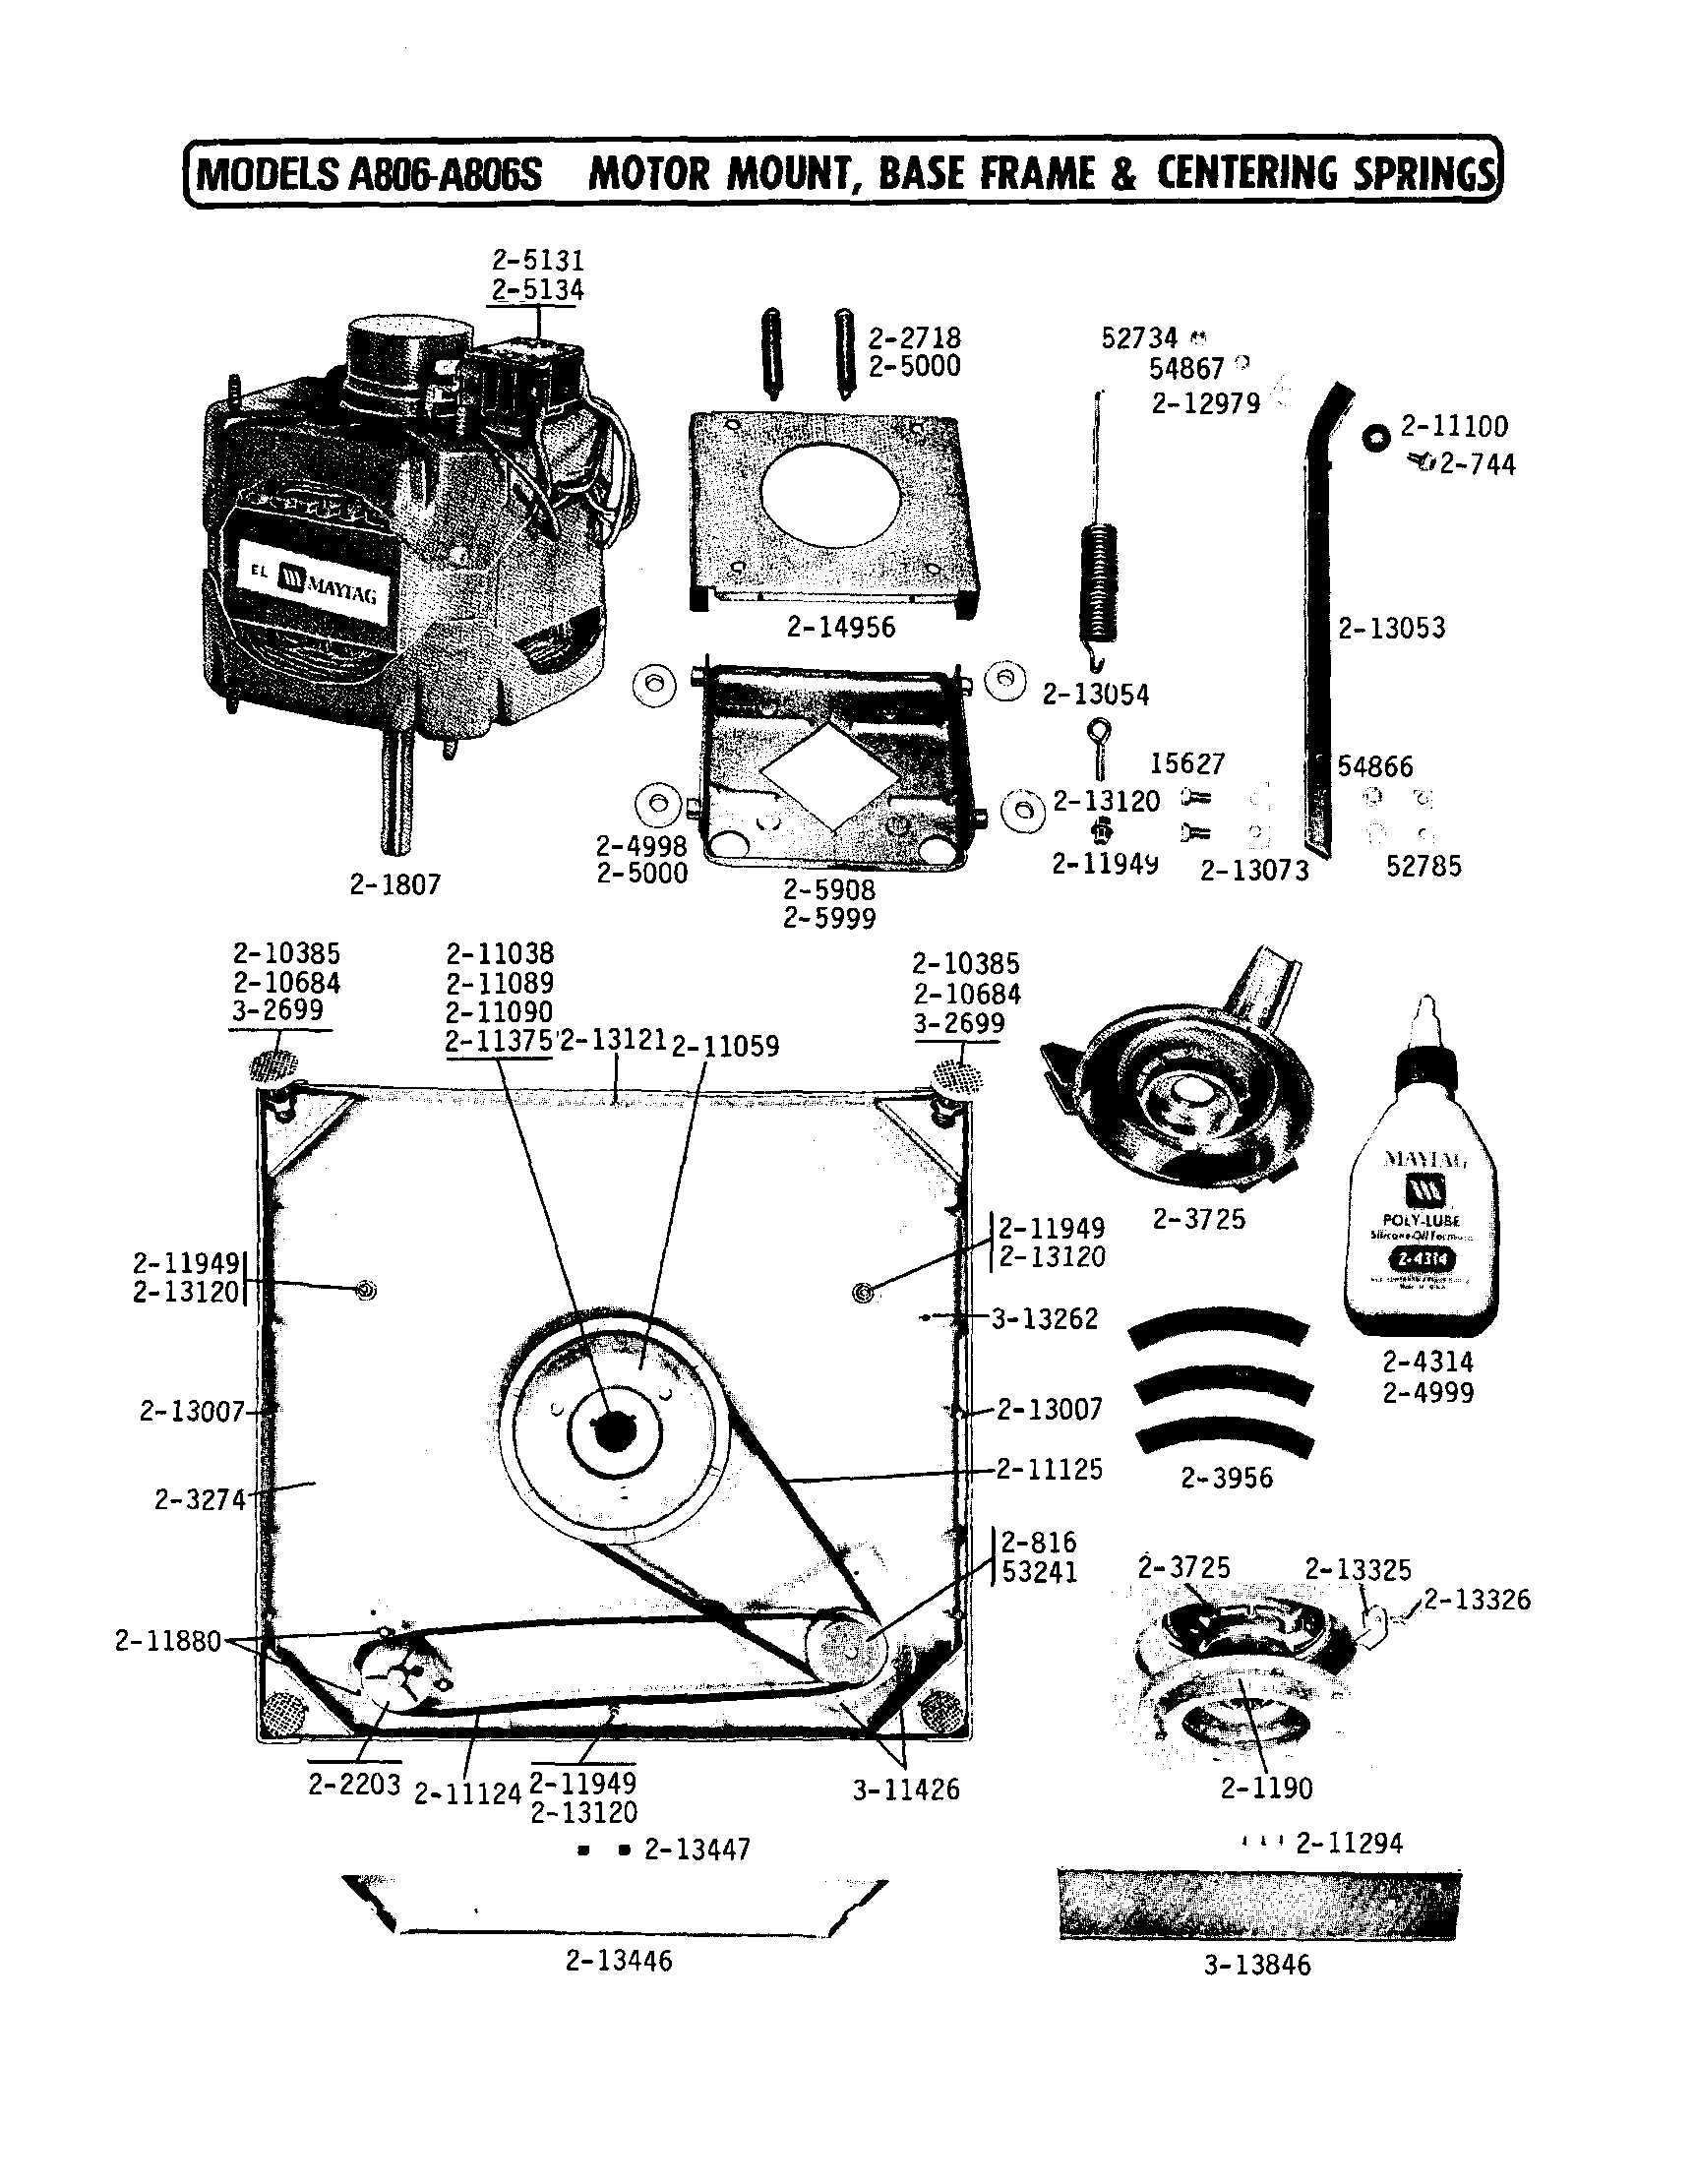 motor mount parts maytag a806 timer stove clocks and appliance timers washing machine timer wiring diagram at crackthecode.co